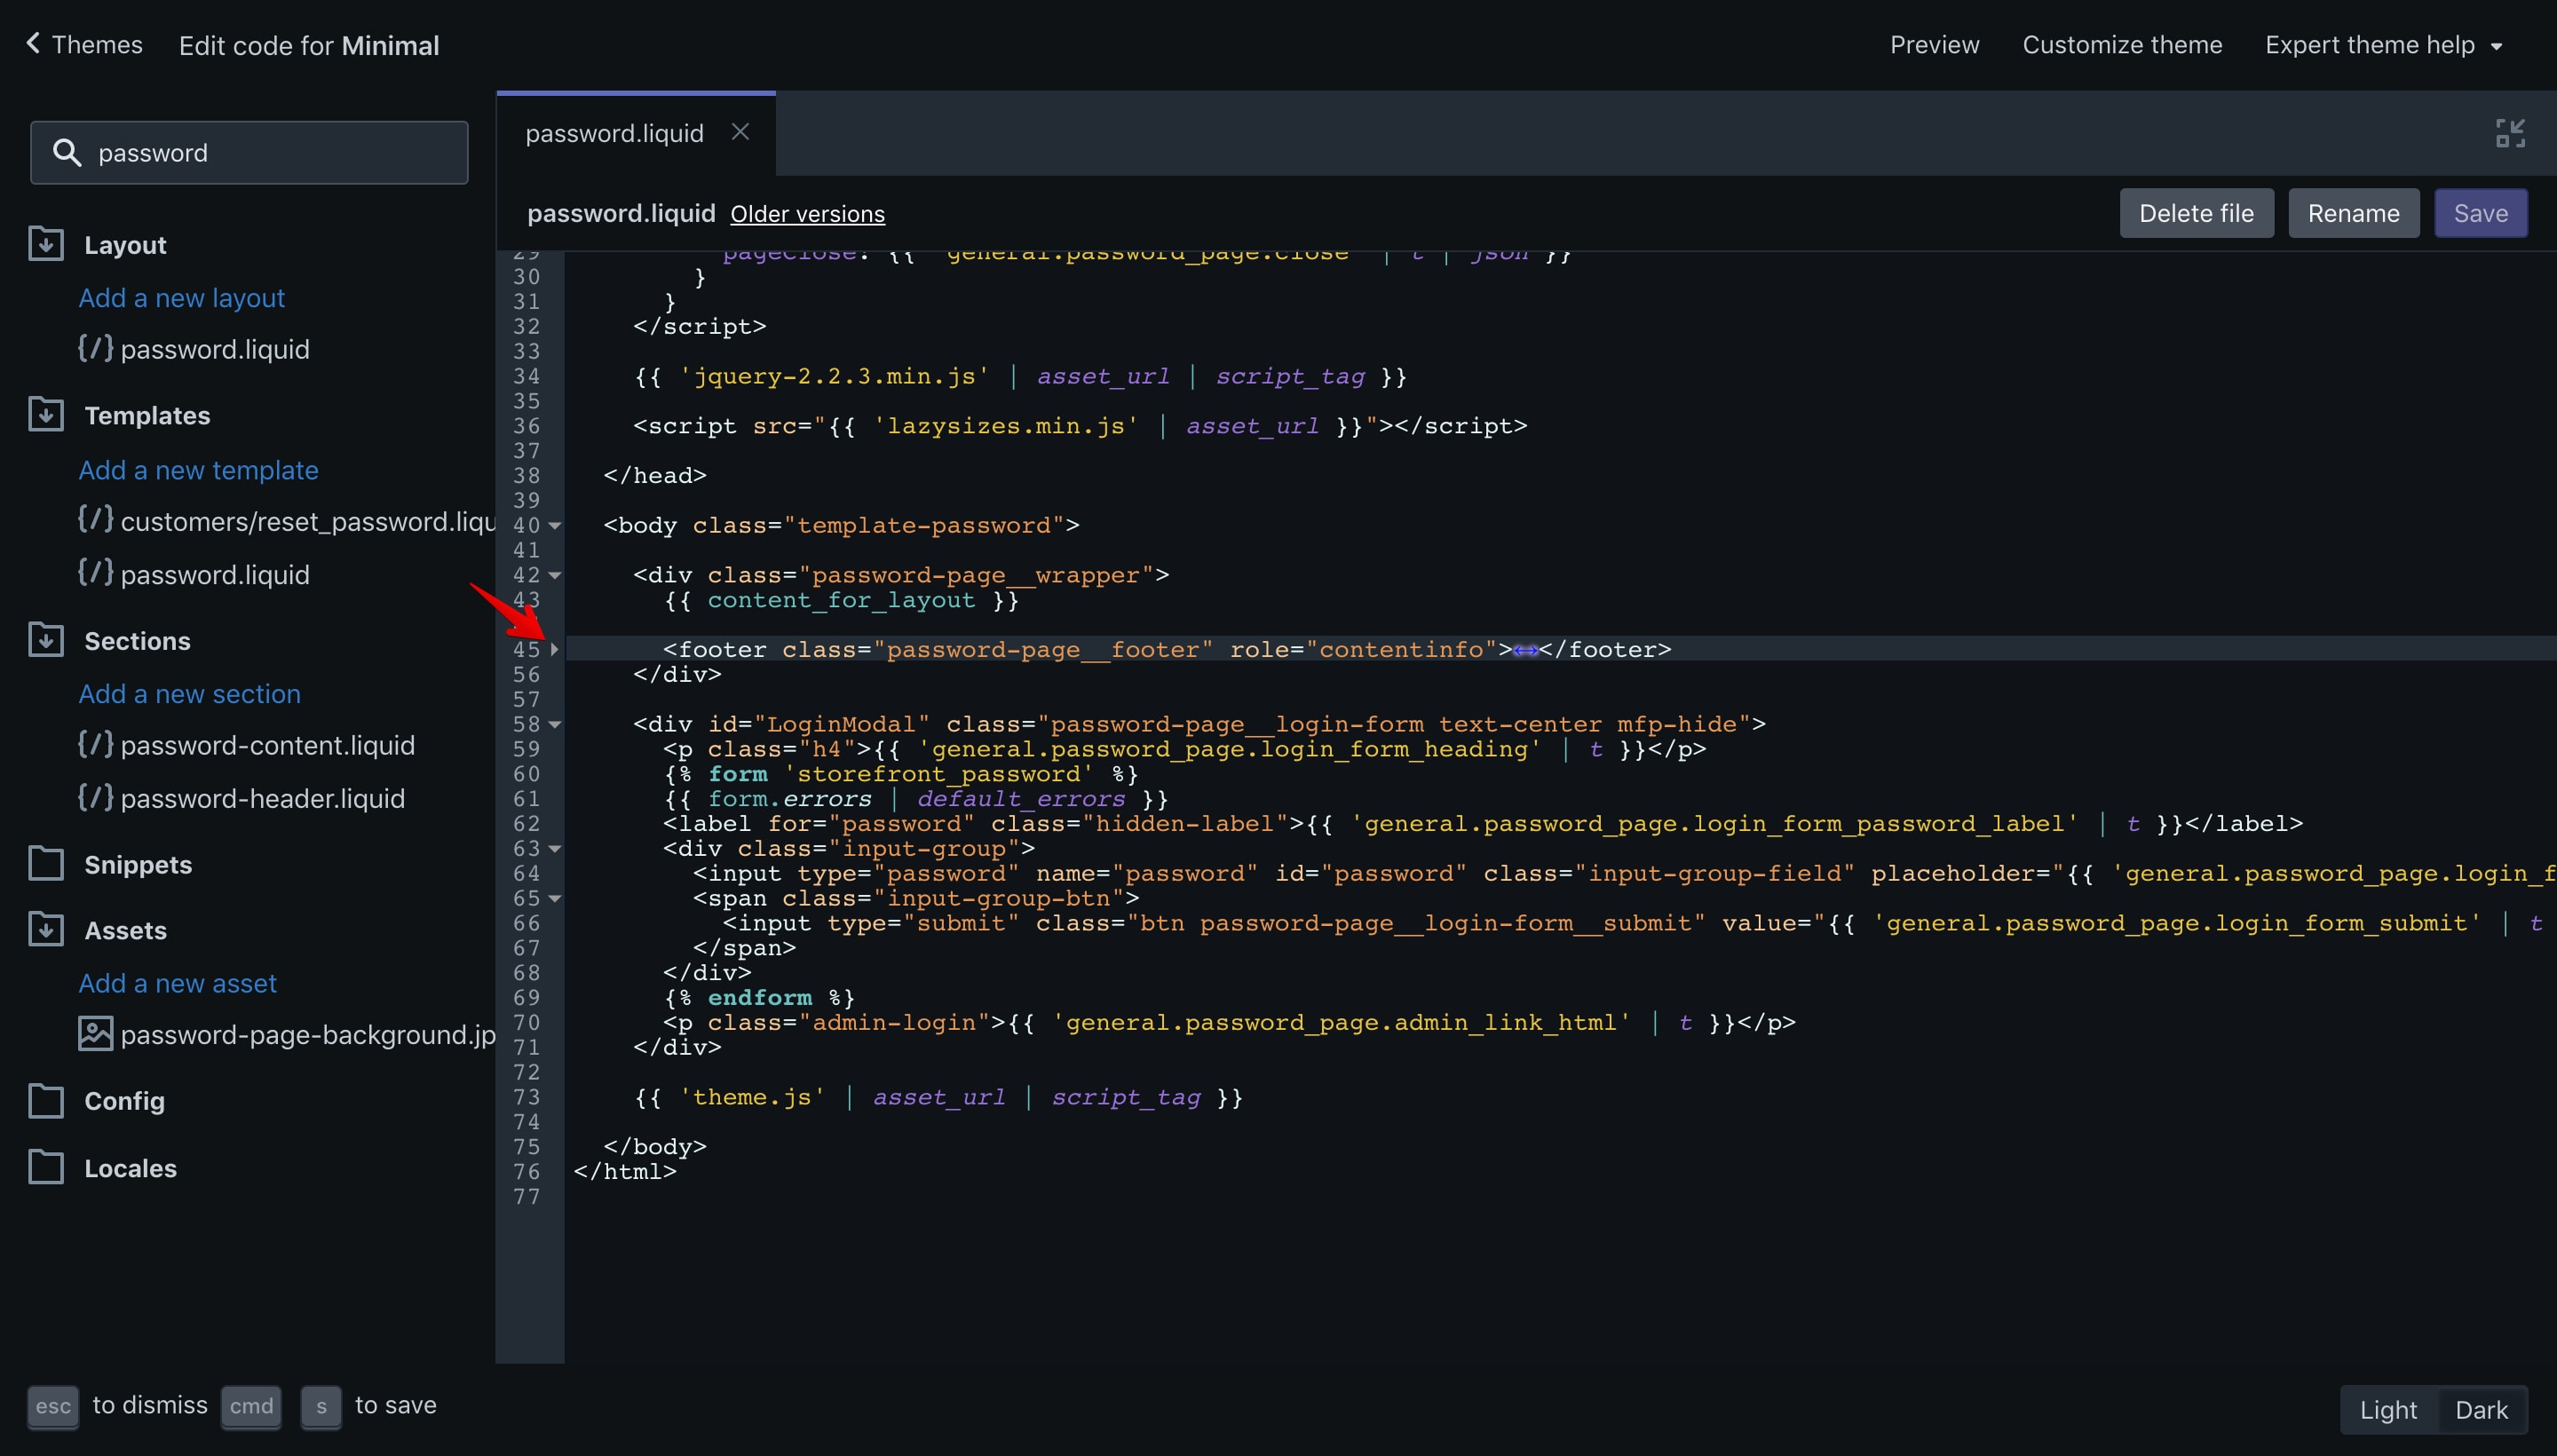 Minimal theme copyright code selection in the code editor.